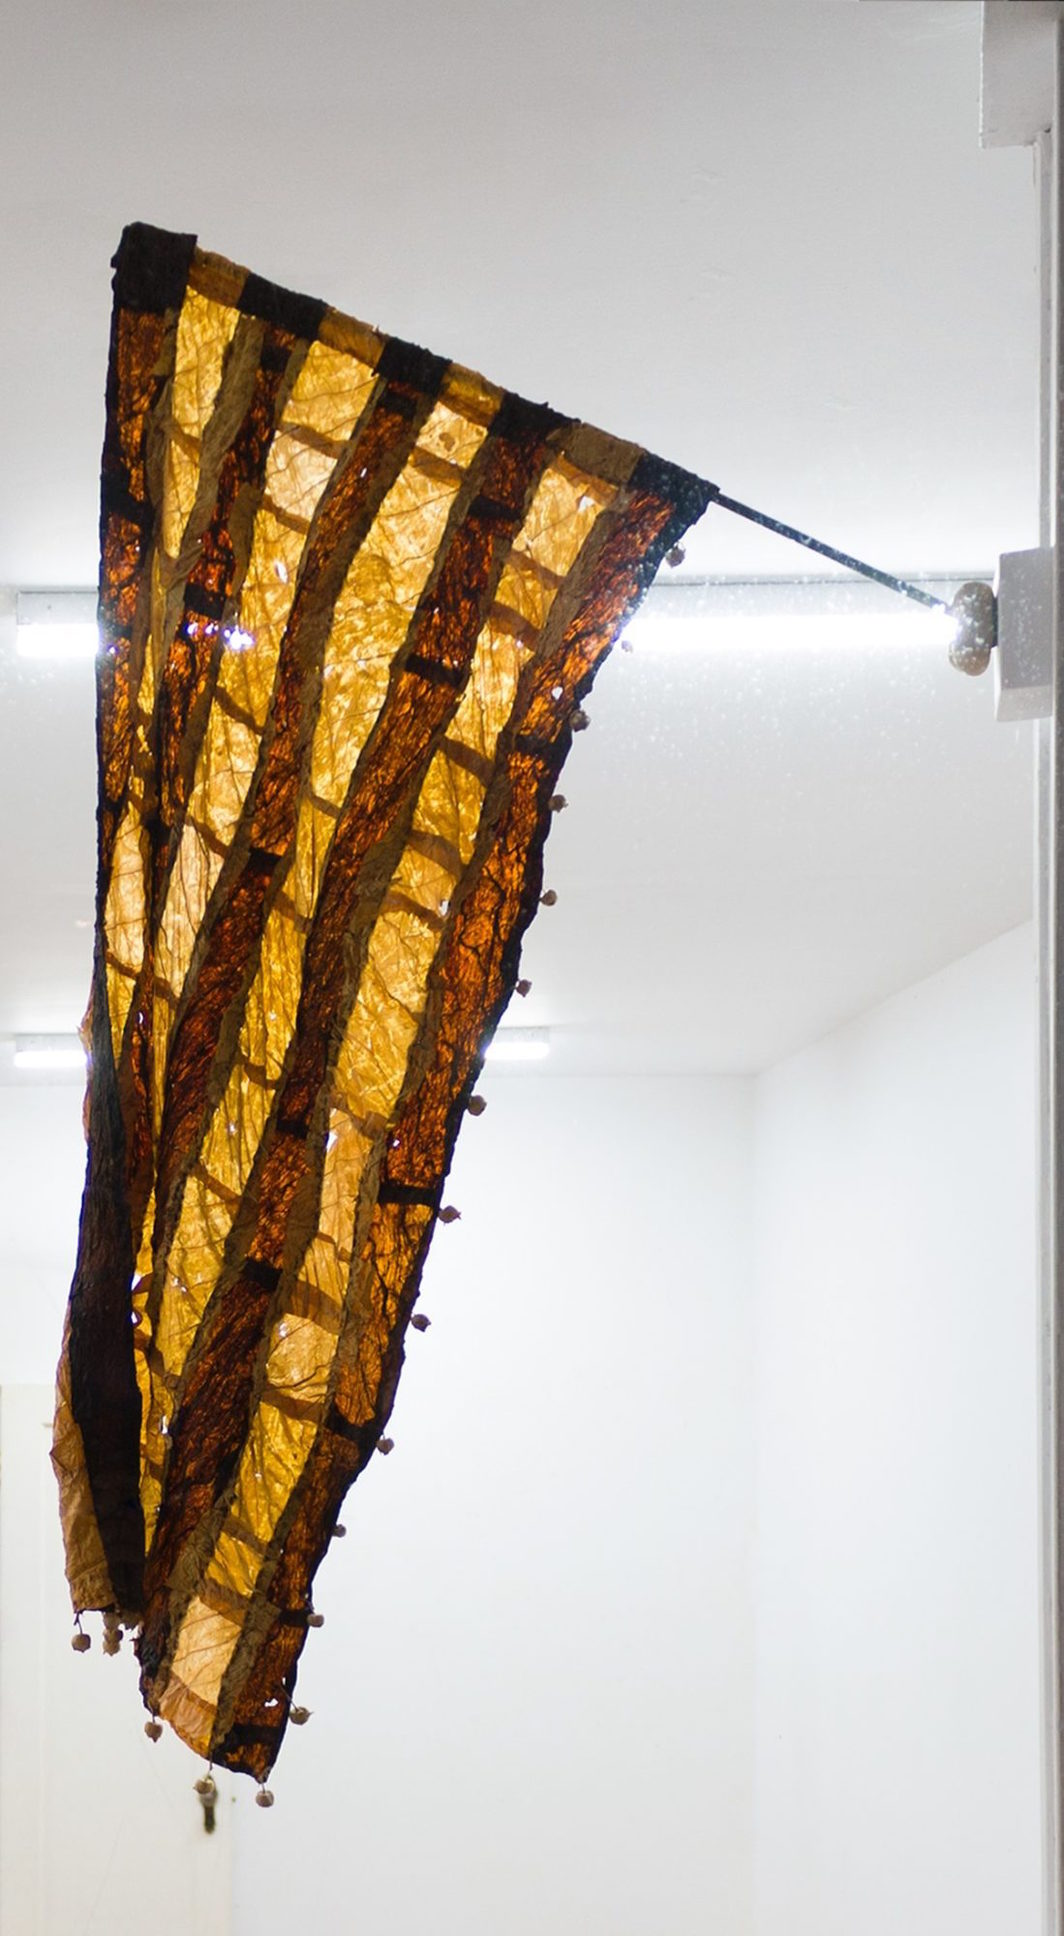 """Gabrielle L'Hirondelle Hill, Dispersal, 2019, Virginia tobacco, Perique tobacco, thread, seed pods, support stocking, and found pole, 43 x 14 5/16""""."""